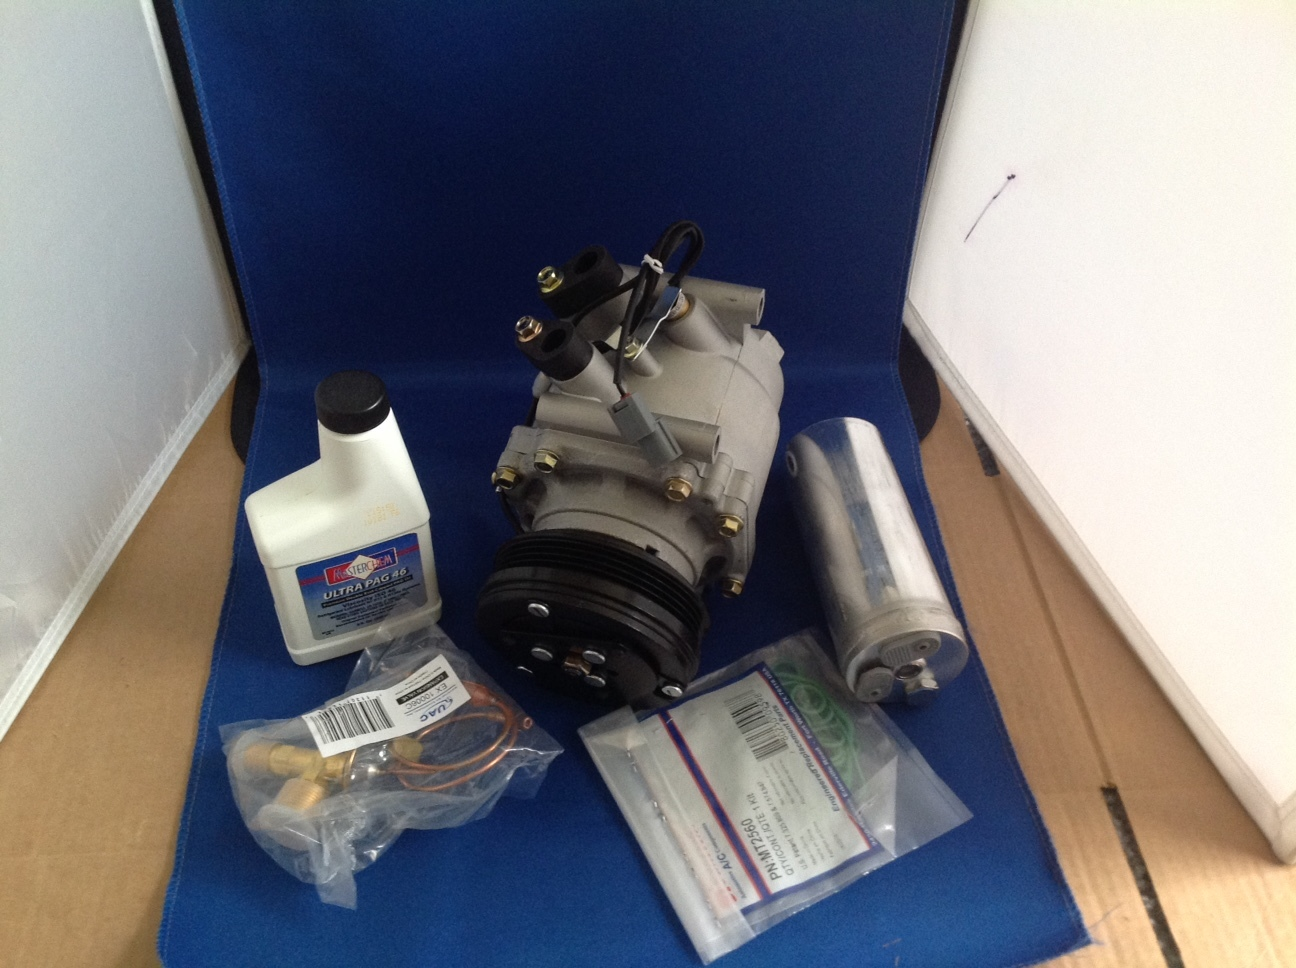 96 01 honda civic cr v ac air conditioning compressor kit  2